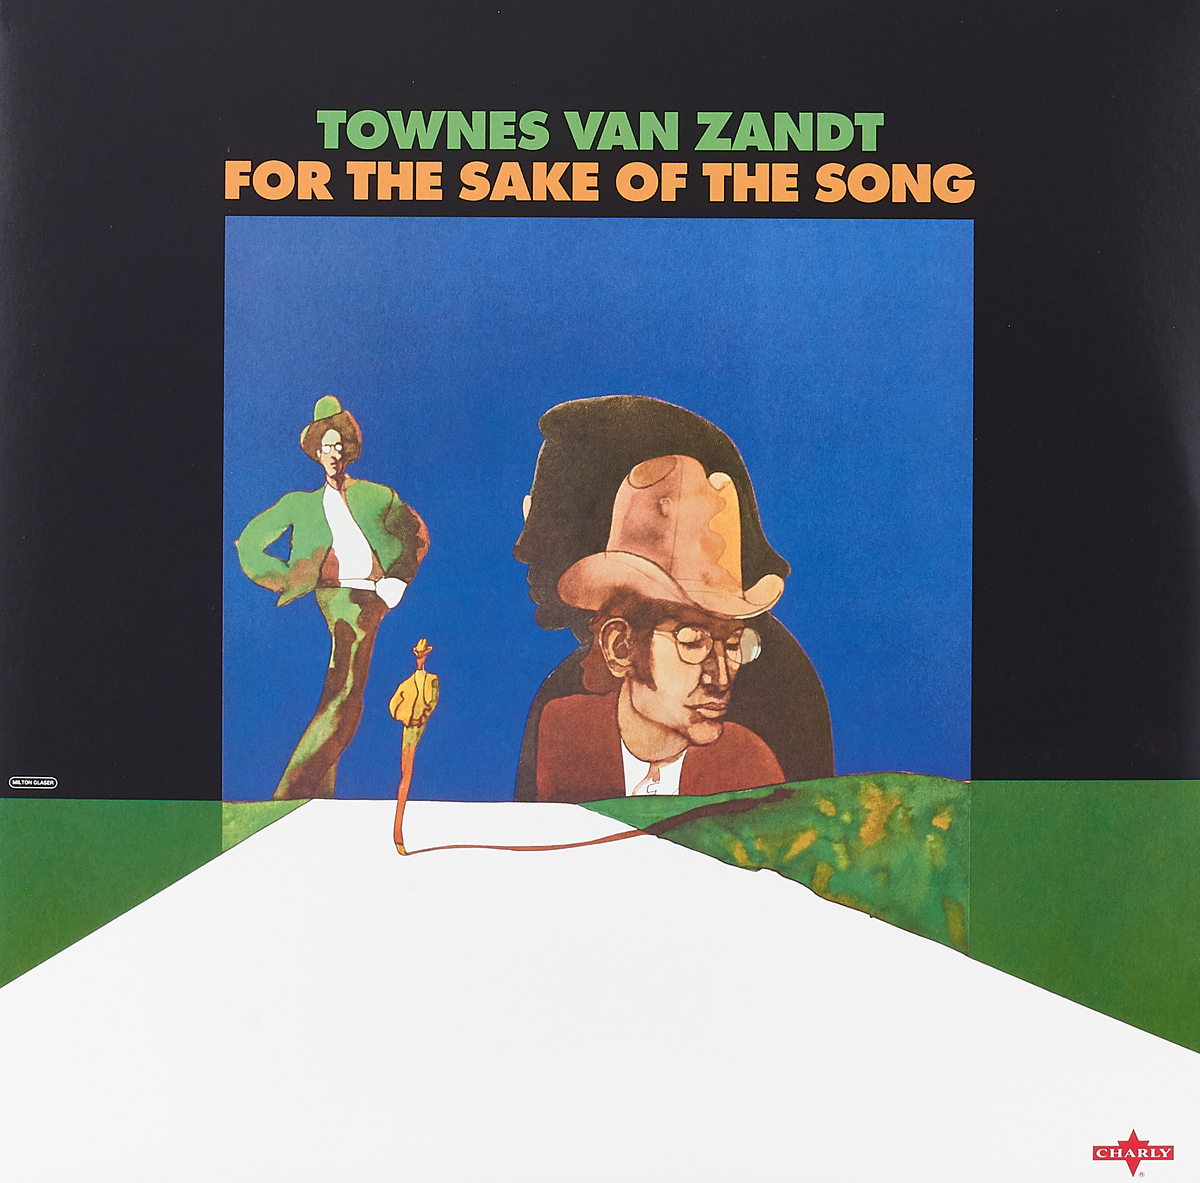 Townes Van Zandt Townes Van Zandt. For The Sake Of The Song (LP) van tzu the matrix of consciousness